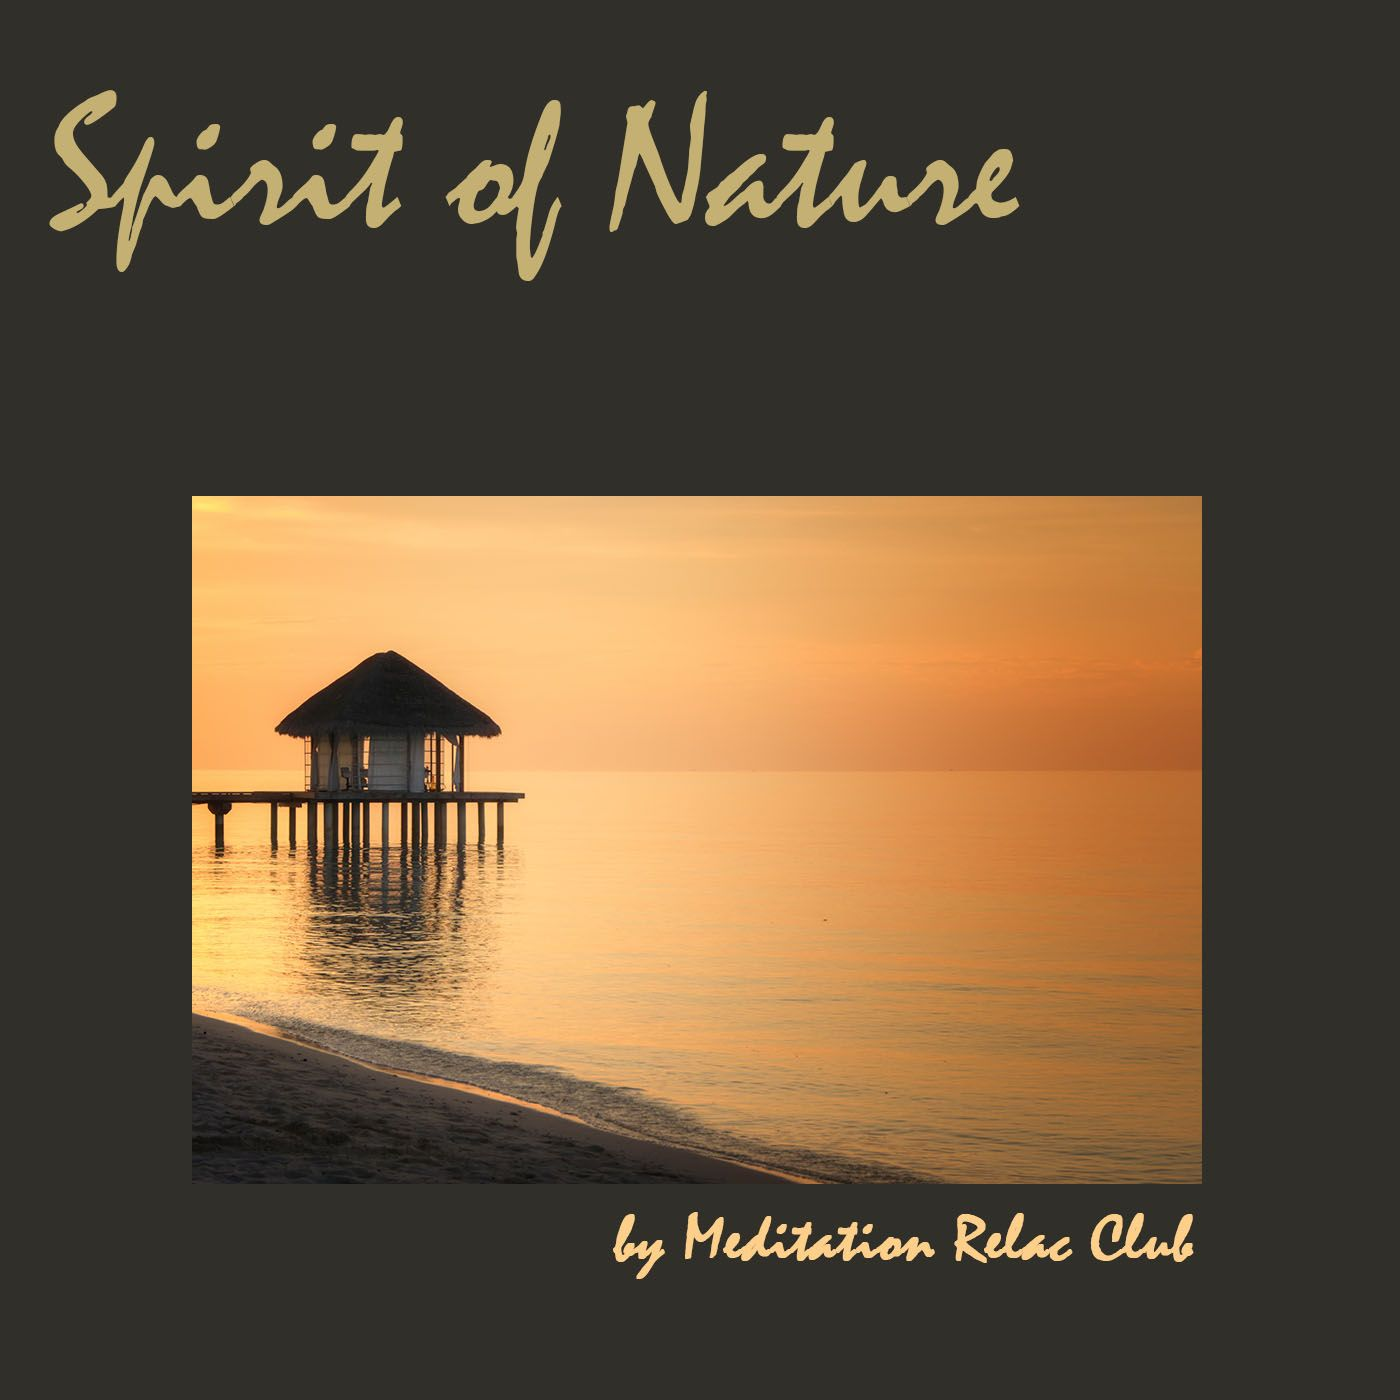 Free Mp3 Download On Meditationrelaxclub Relaxing Spa Music Enjoy It Now